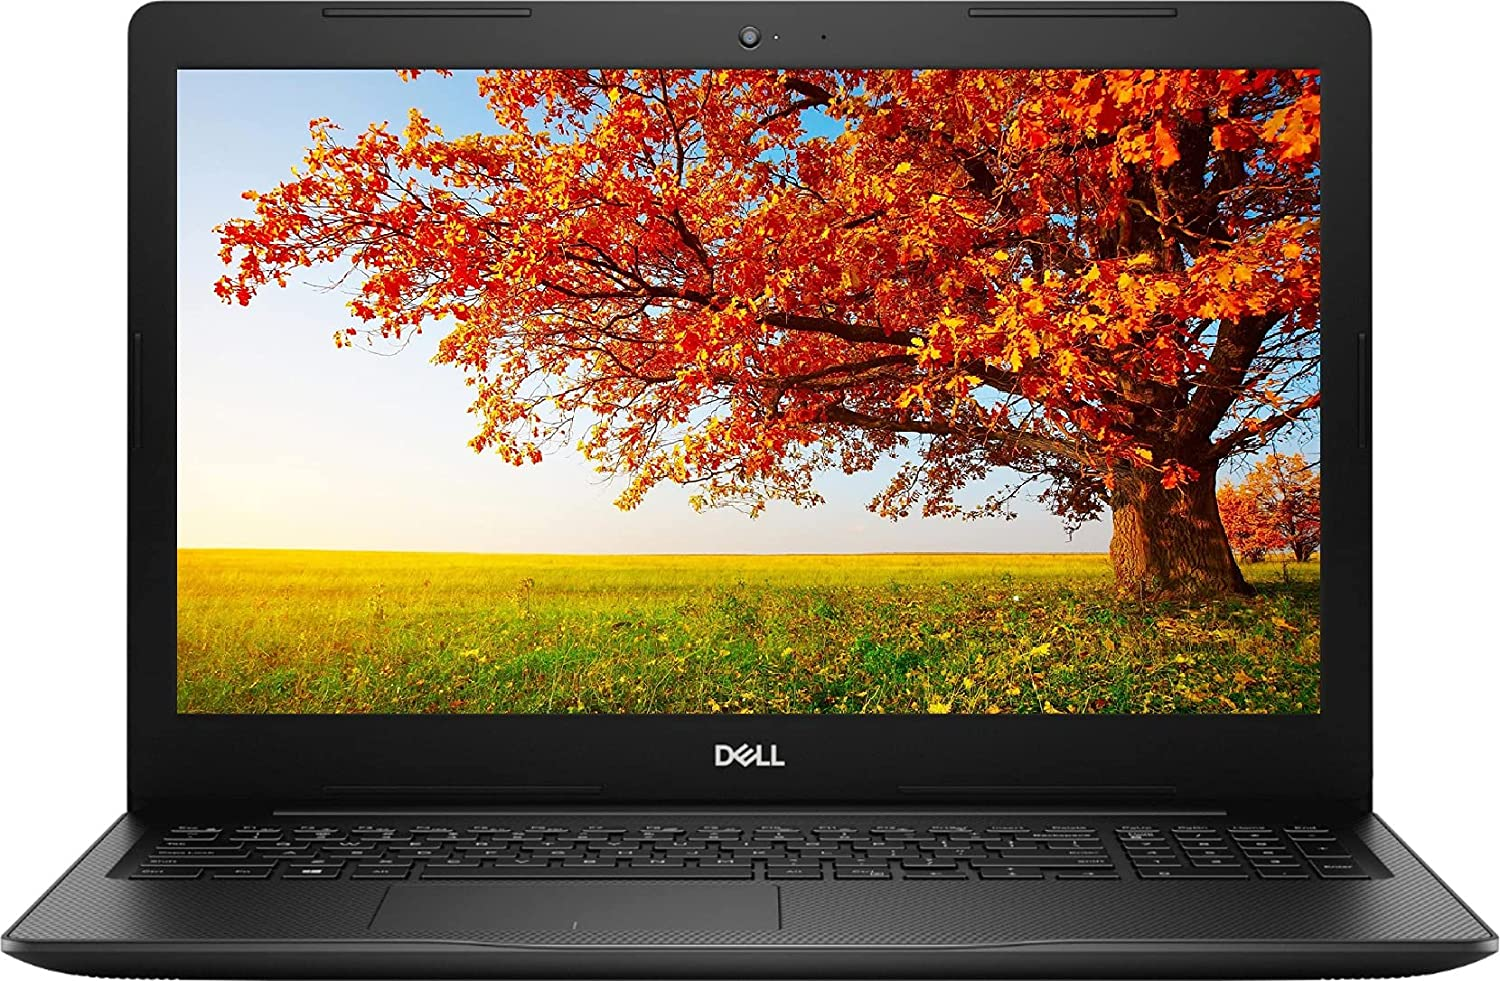 2021 Newest Dell Inspiron 3000 Laptop, 15.6 HD Display, Intel Core i5-1035G1, 12GB DDR4 RAM, 1TB Hard Disk Drive, Online Meeting Ready, Webcam, WiFi, HDMI, Win10 Home, Black